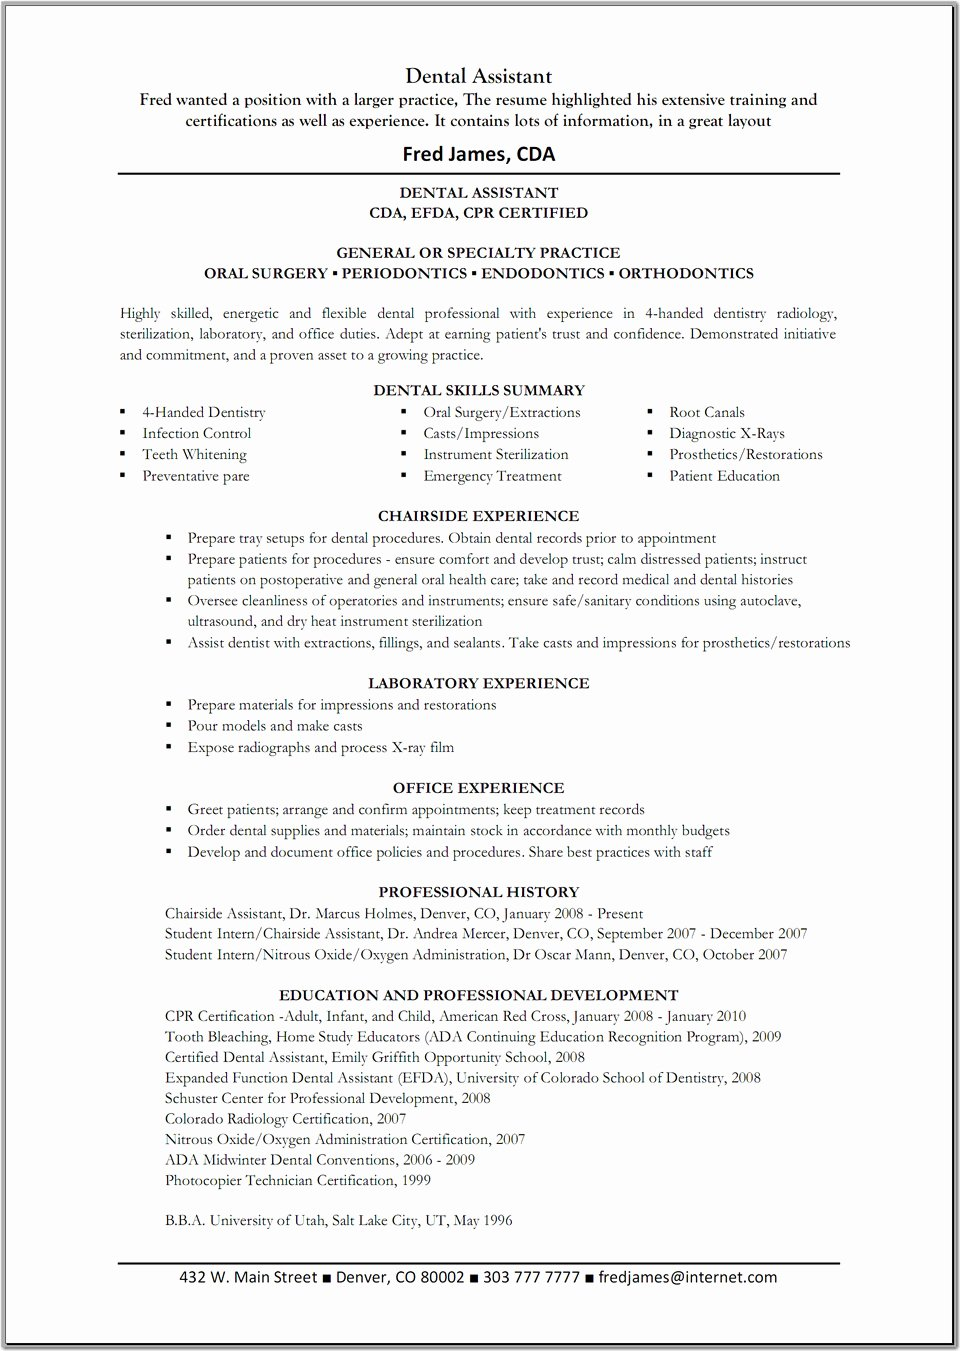 Free Download Dental Assistant Resume Template